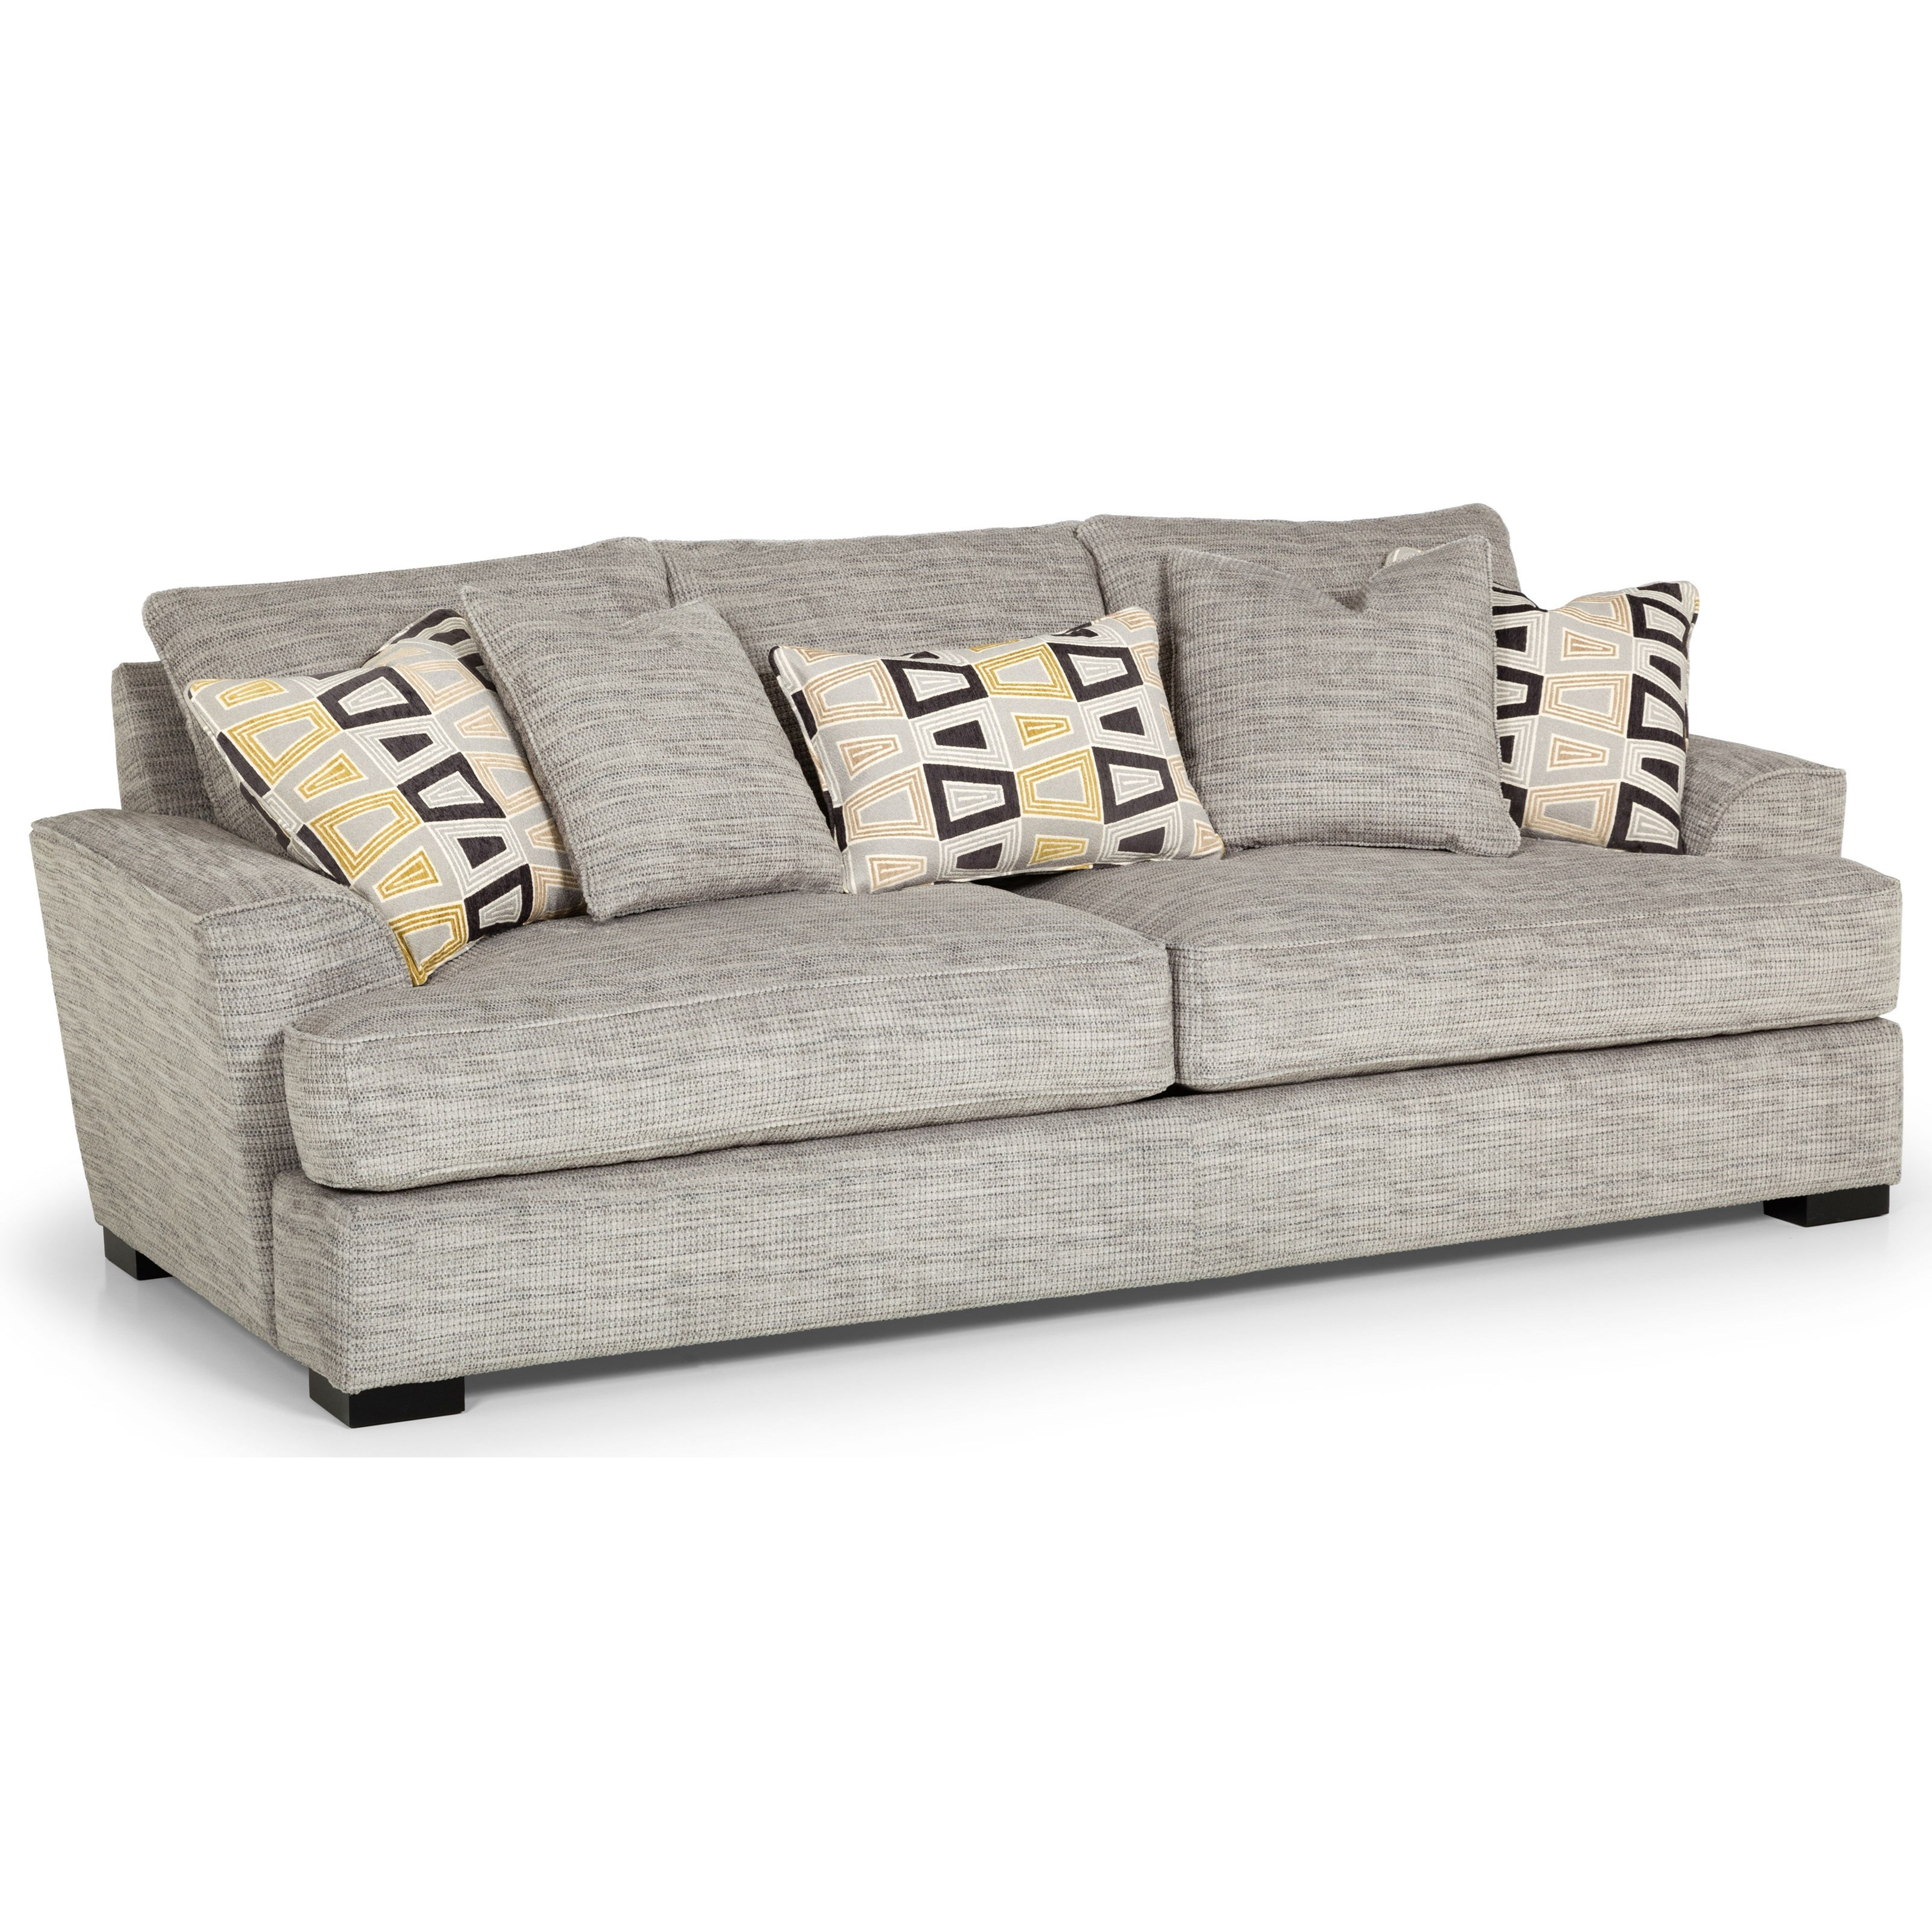 495 Sofa by Stanton at Wilson's Furniture